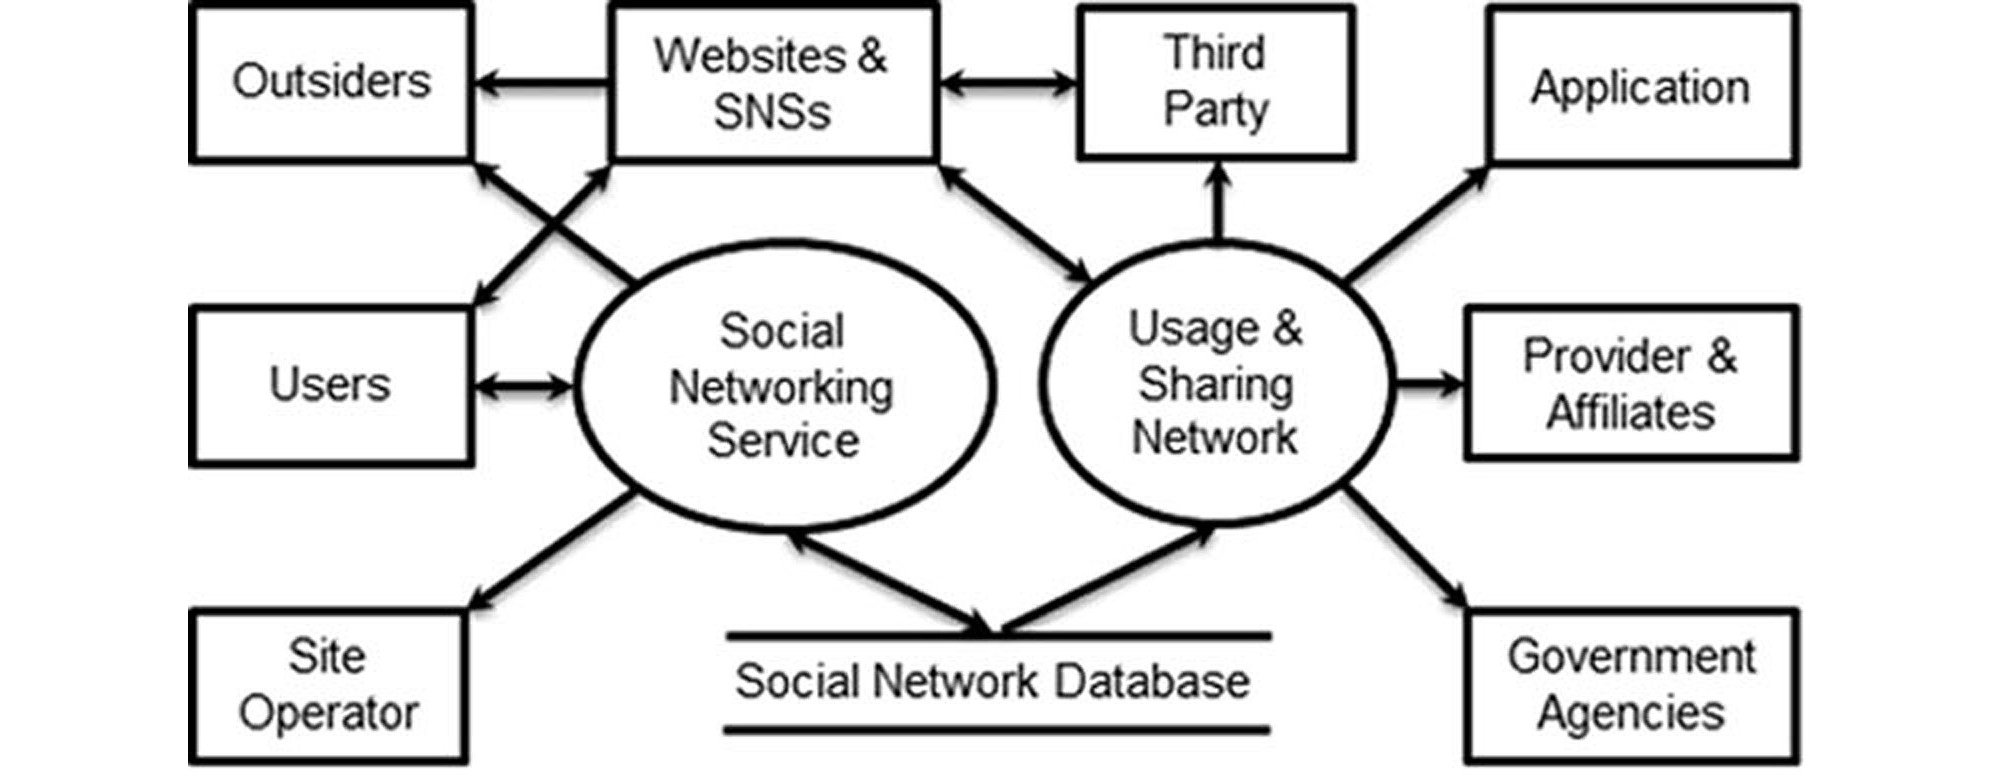 literature review on social networking Enabled by ict, social media are instrumental in and shaping and catalyzing social change for they allow for wide participation, continued flow of communication, and.